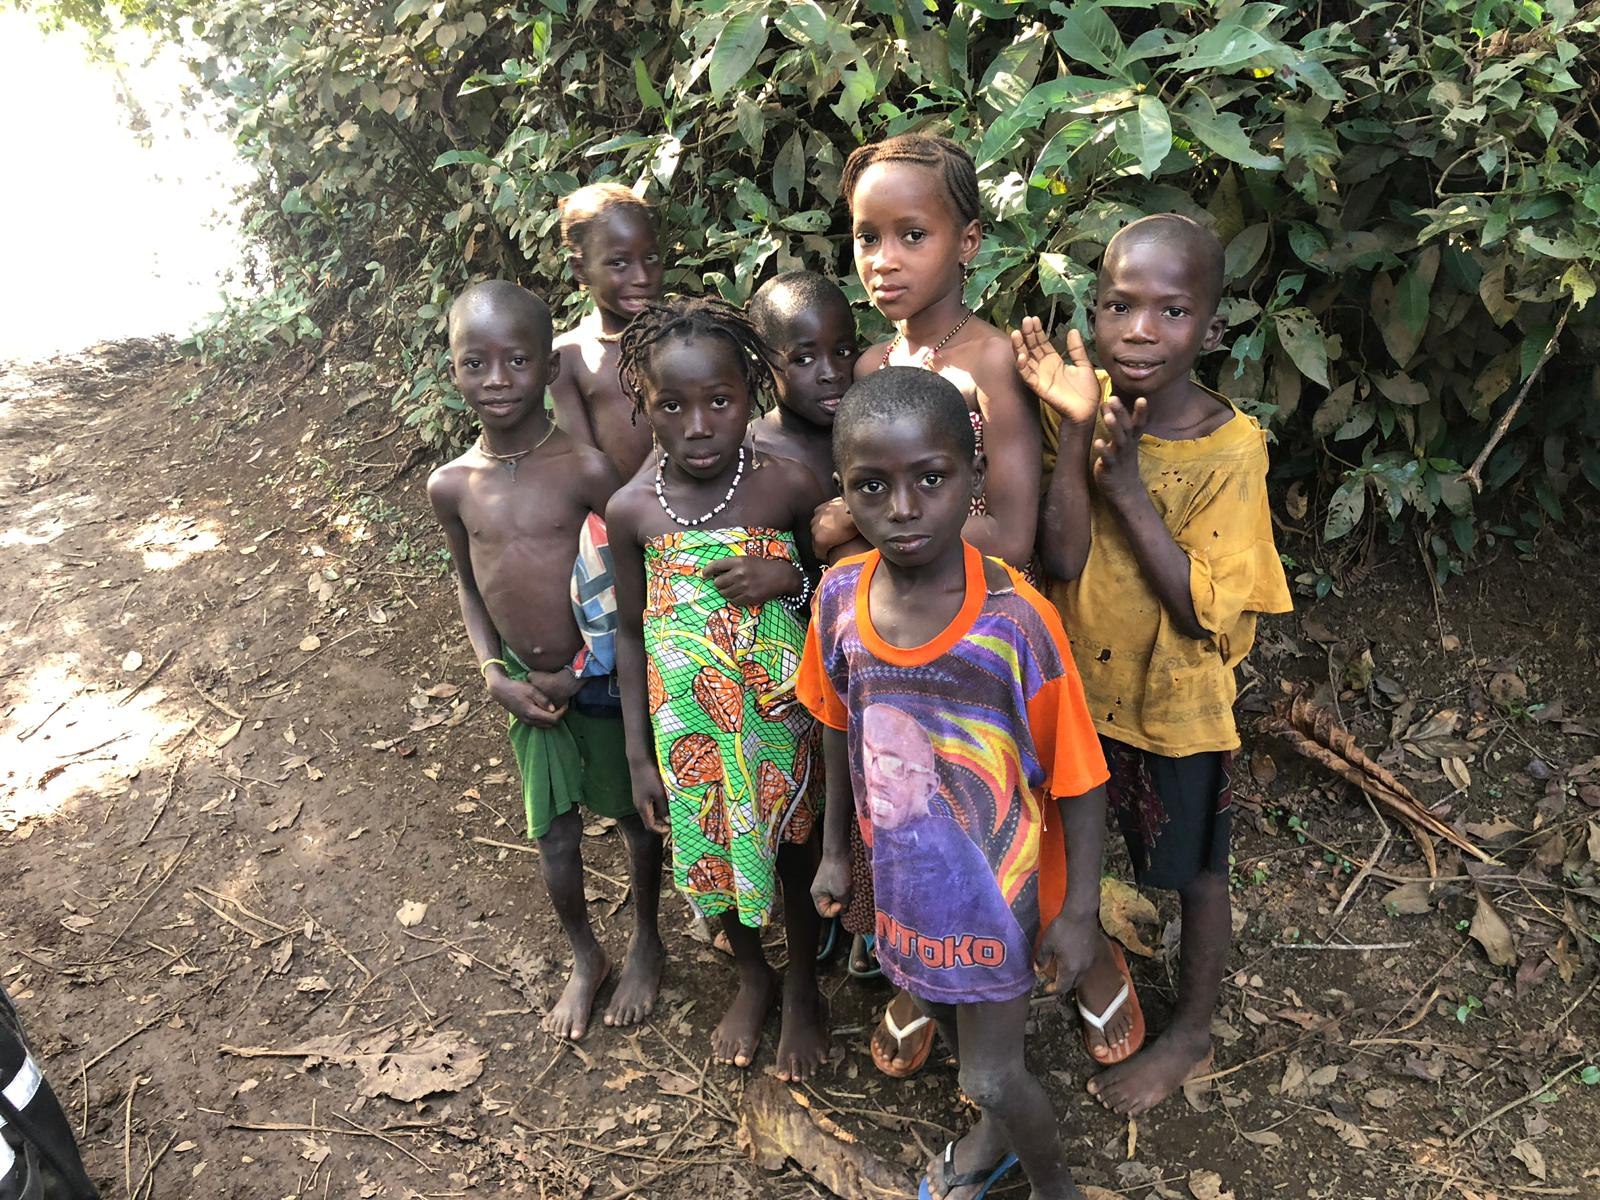 Local children at River Kogon when leaving Guinea-Bissau from Contabane to enter Guinea.